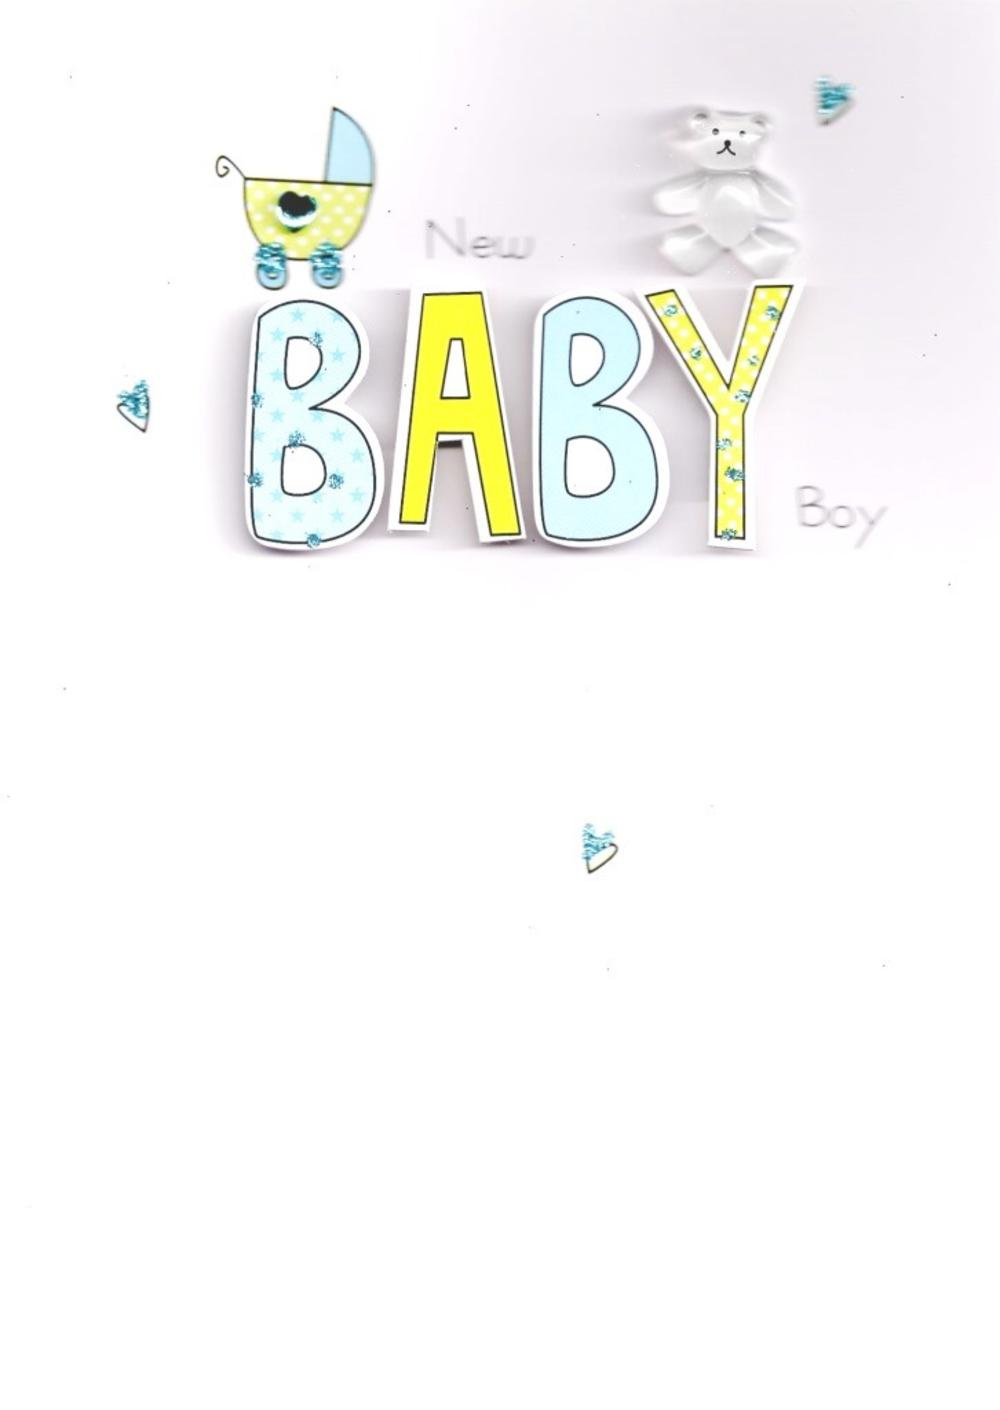 New Baby Boy Handcrafted Greeting Card